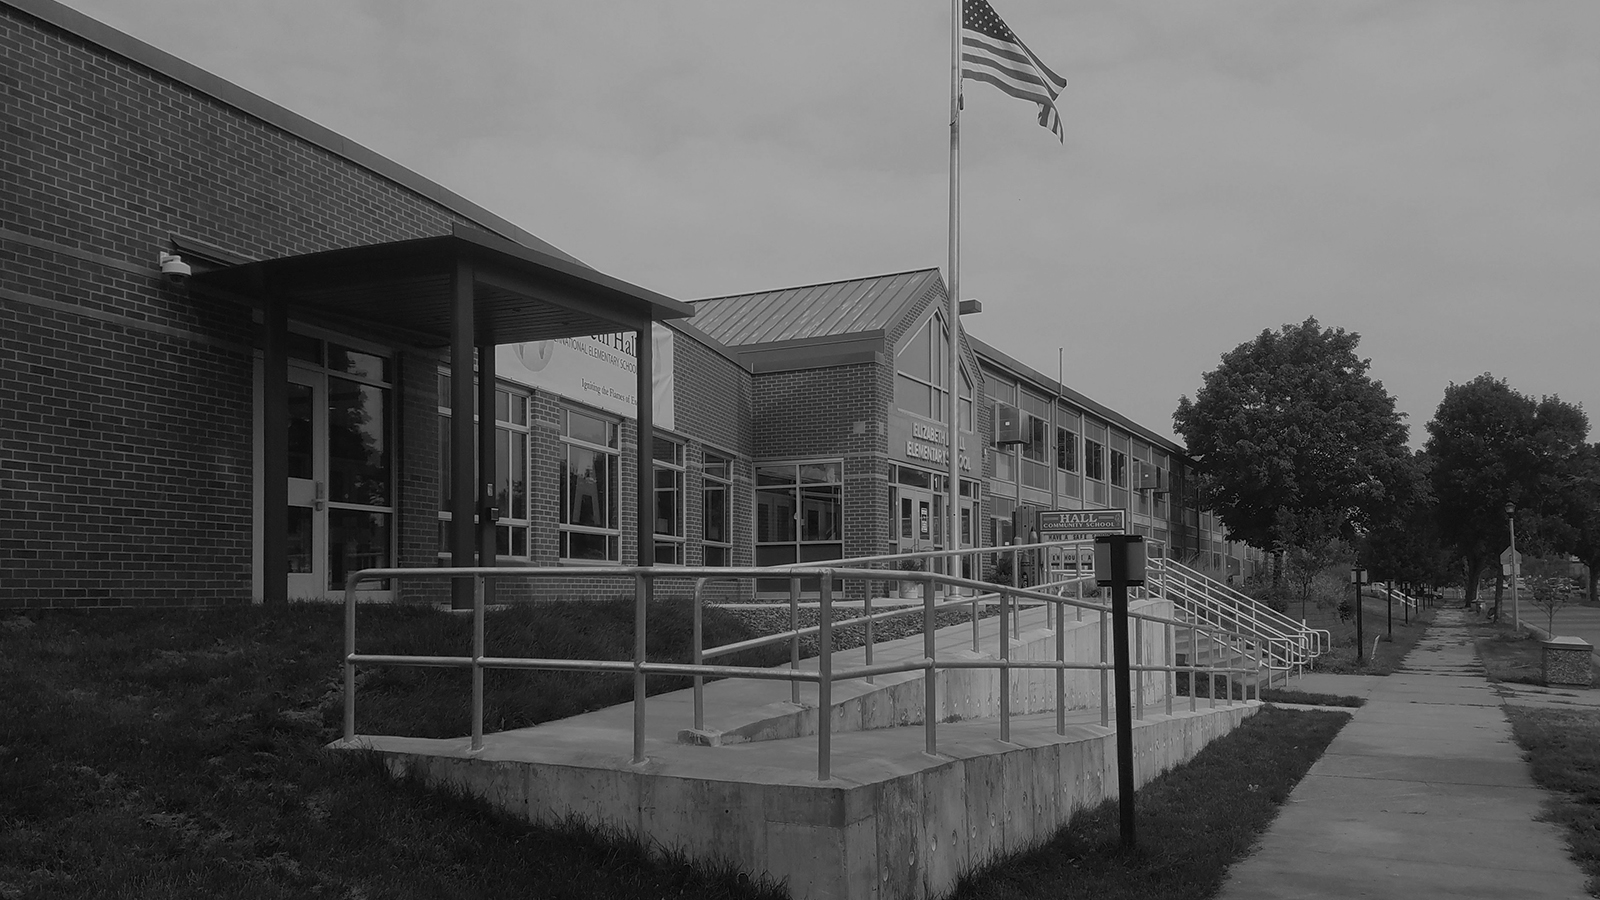 stylized, B&W photo of LEO A DALY - ELIZABETH HALL ELEMENTARY SCHOOL